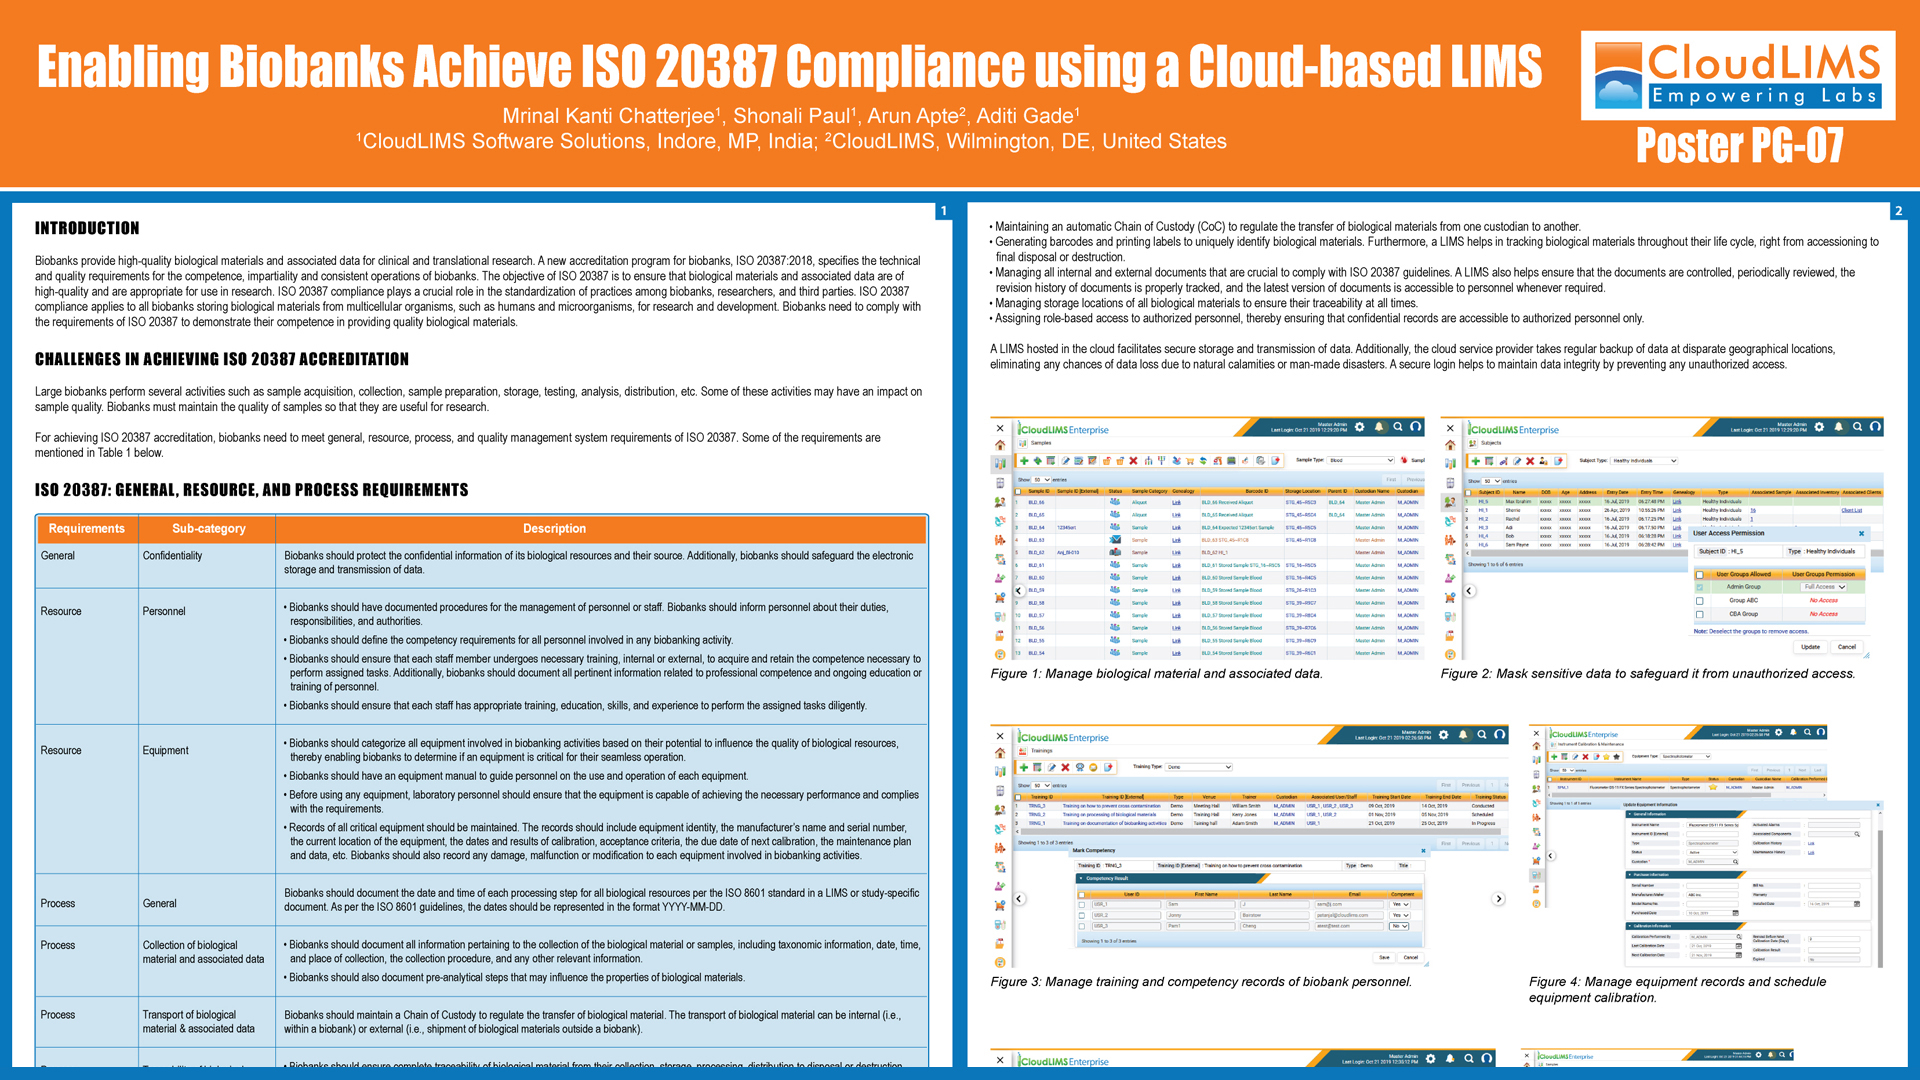 ISBER 2019 Regional Meeting & Exhibits Poster - Enabling Biobanks Achieve ISO 20387 Compliance using a Cloud-based LIMS